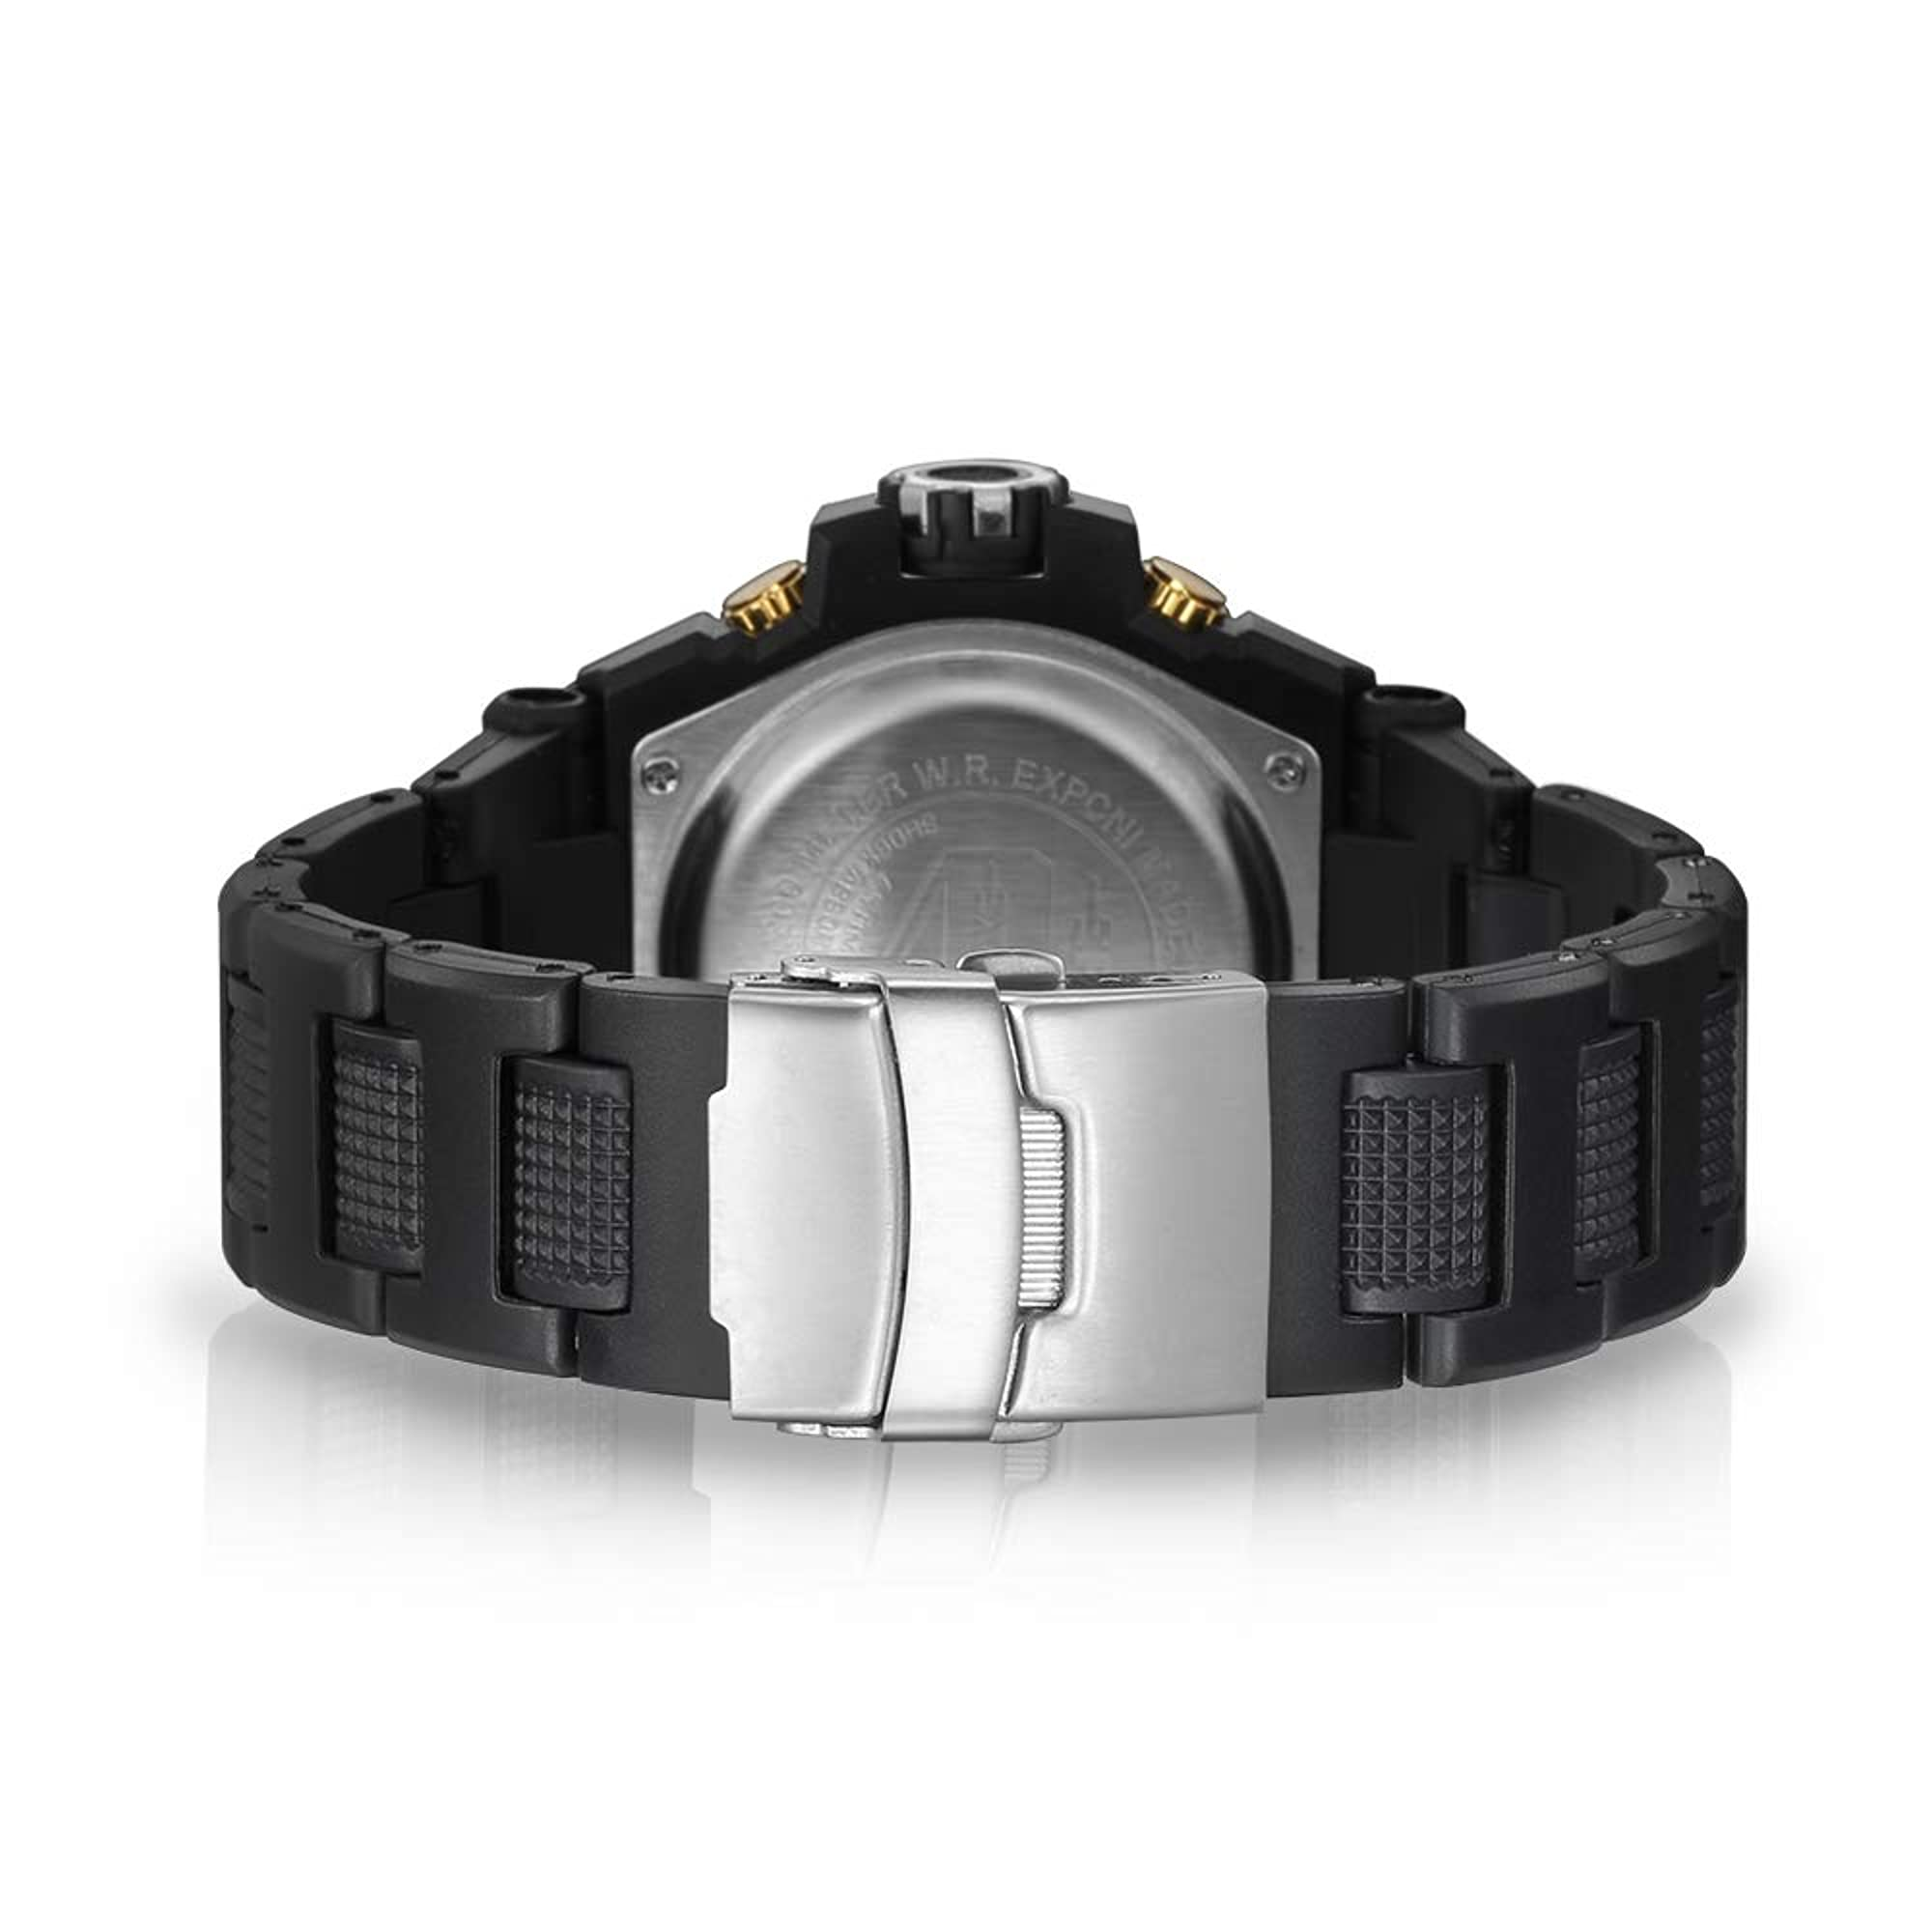 Sports Digital Men's Wrist Watch